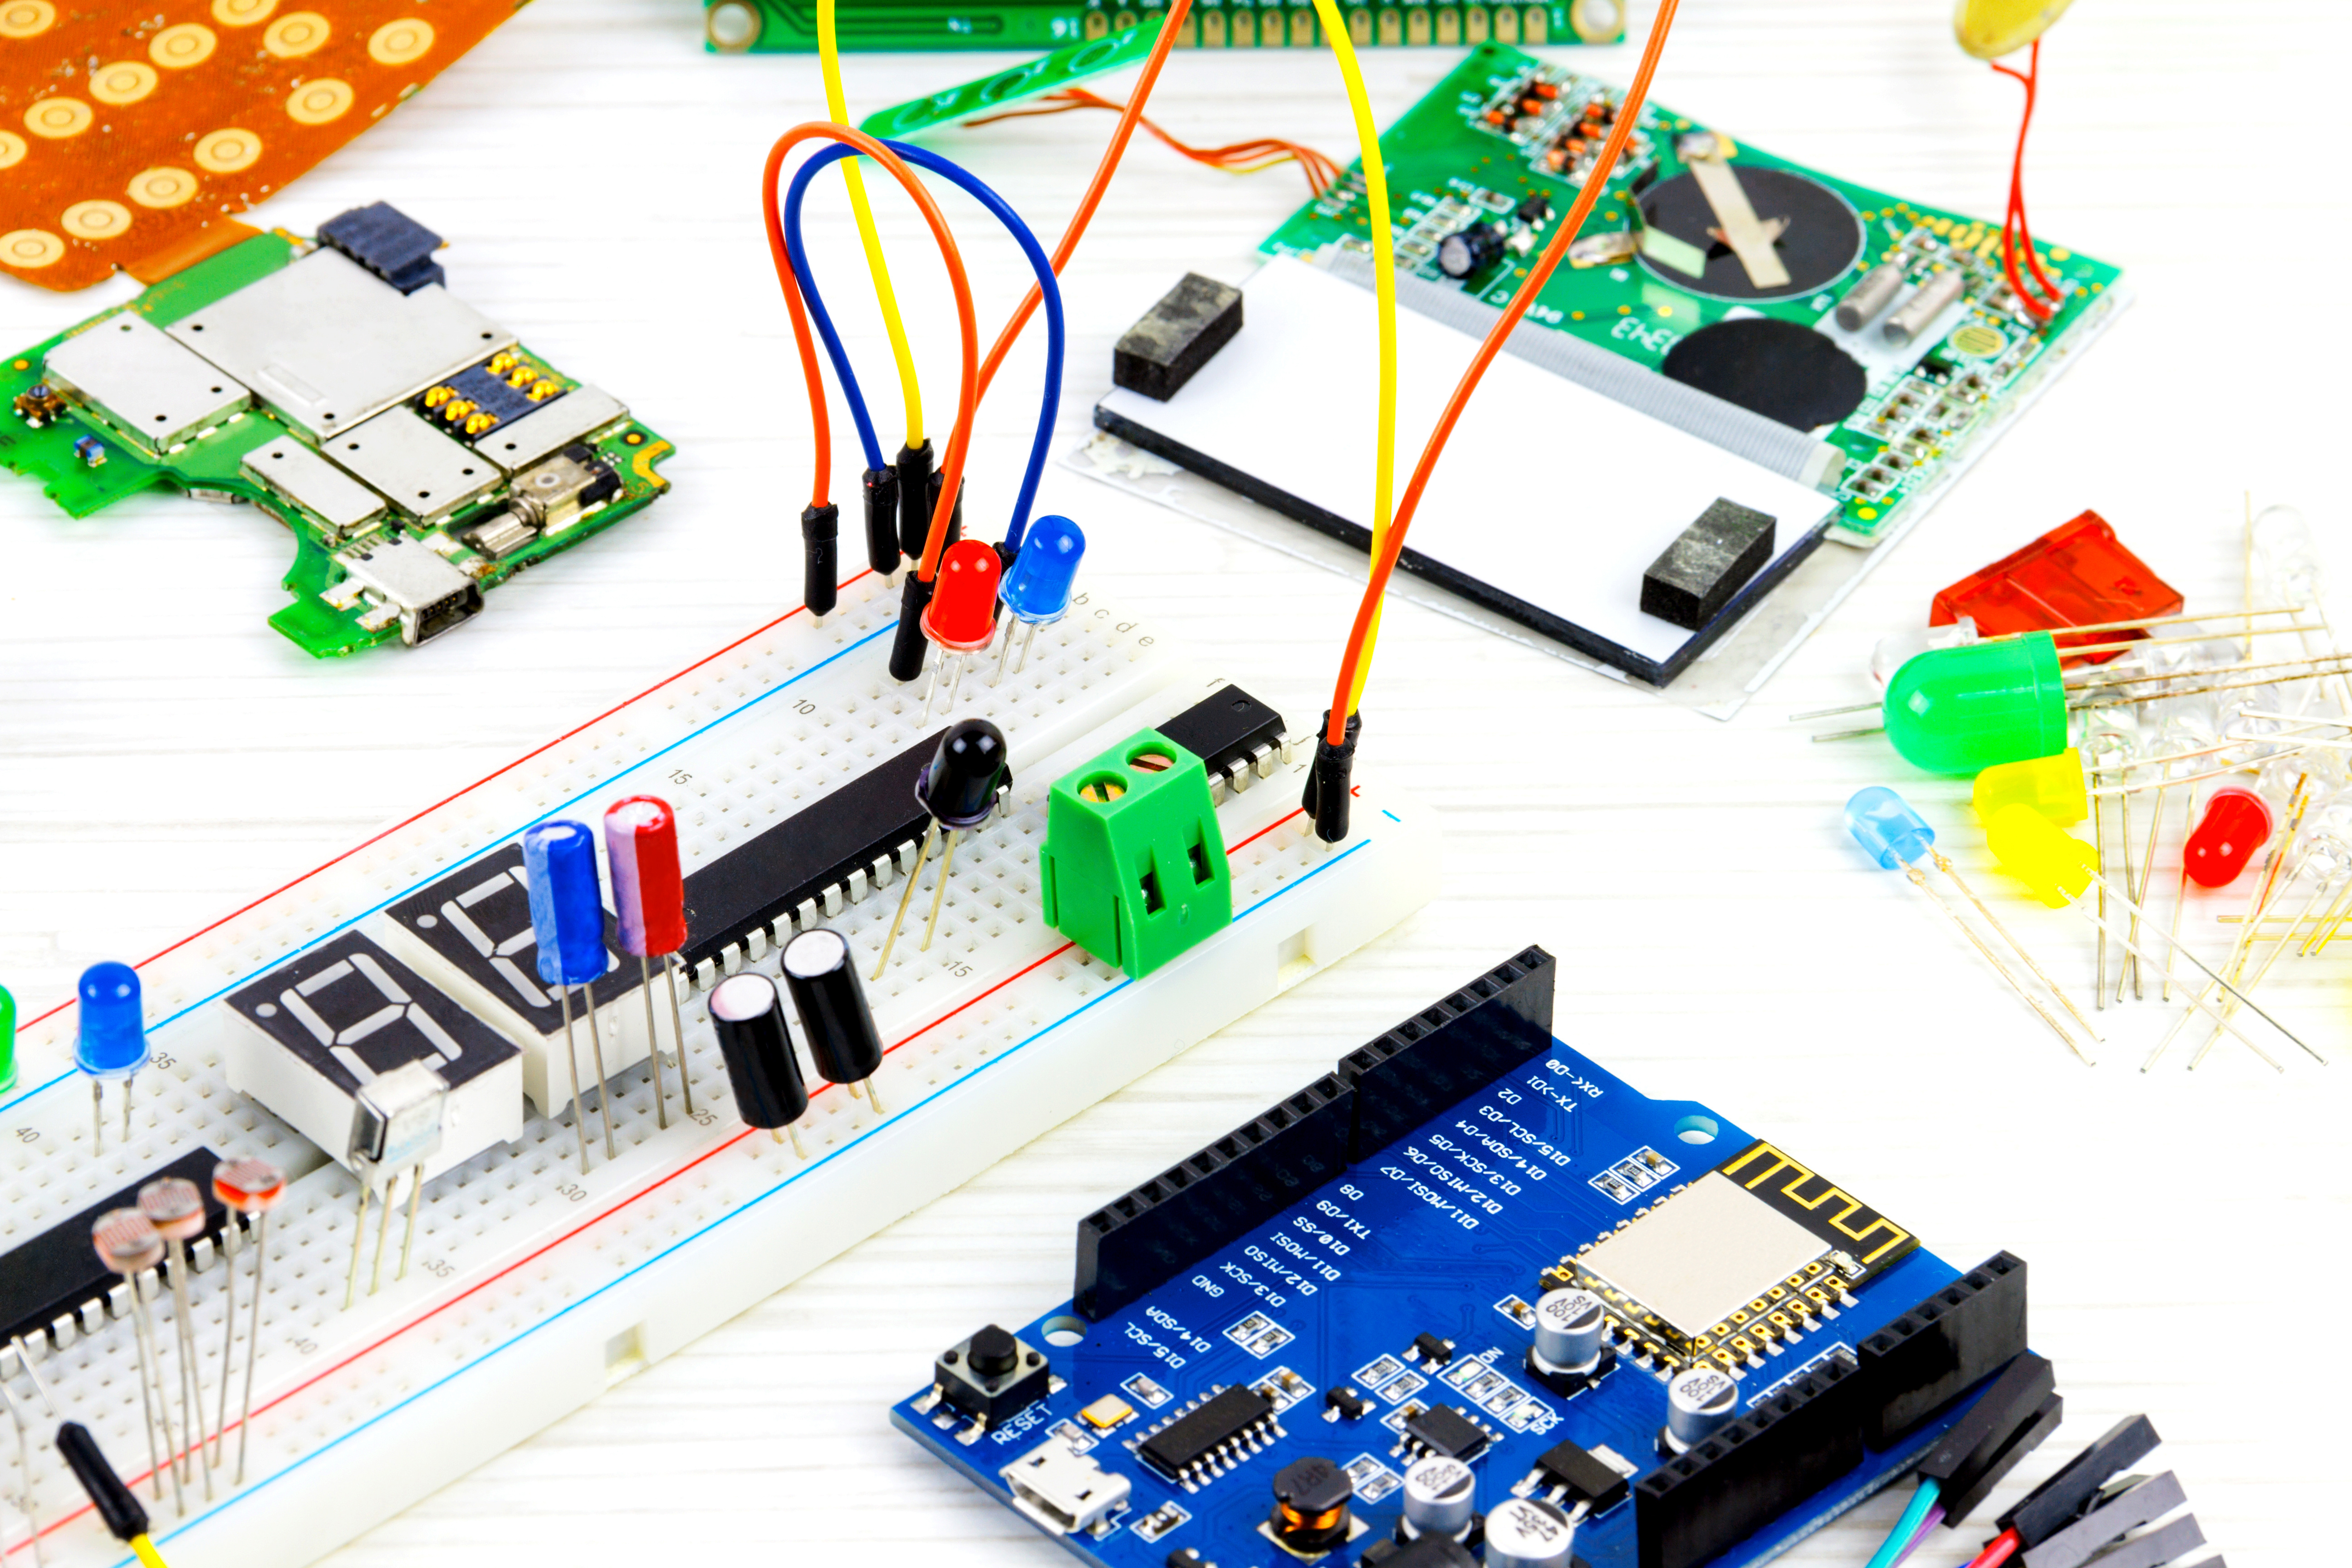 Microcontrollers, chips, resistors and light-emitting diodes on white desktop of hardware engineer. Engineer workplace